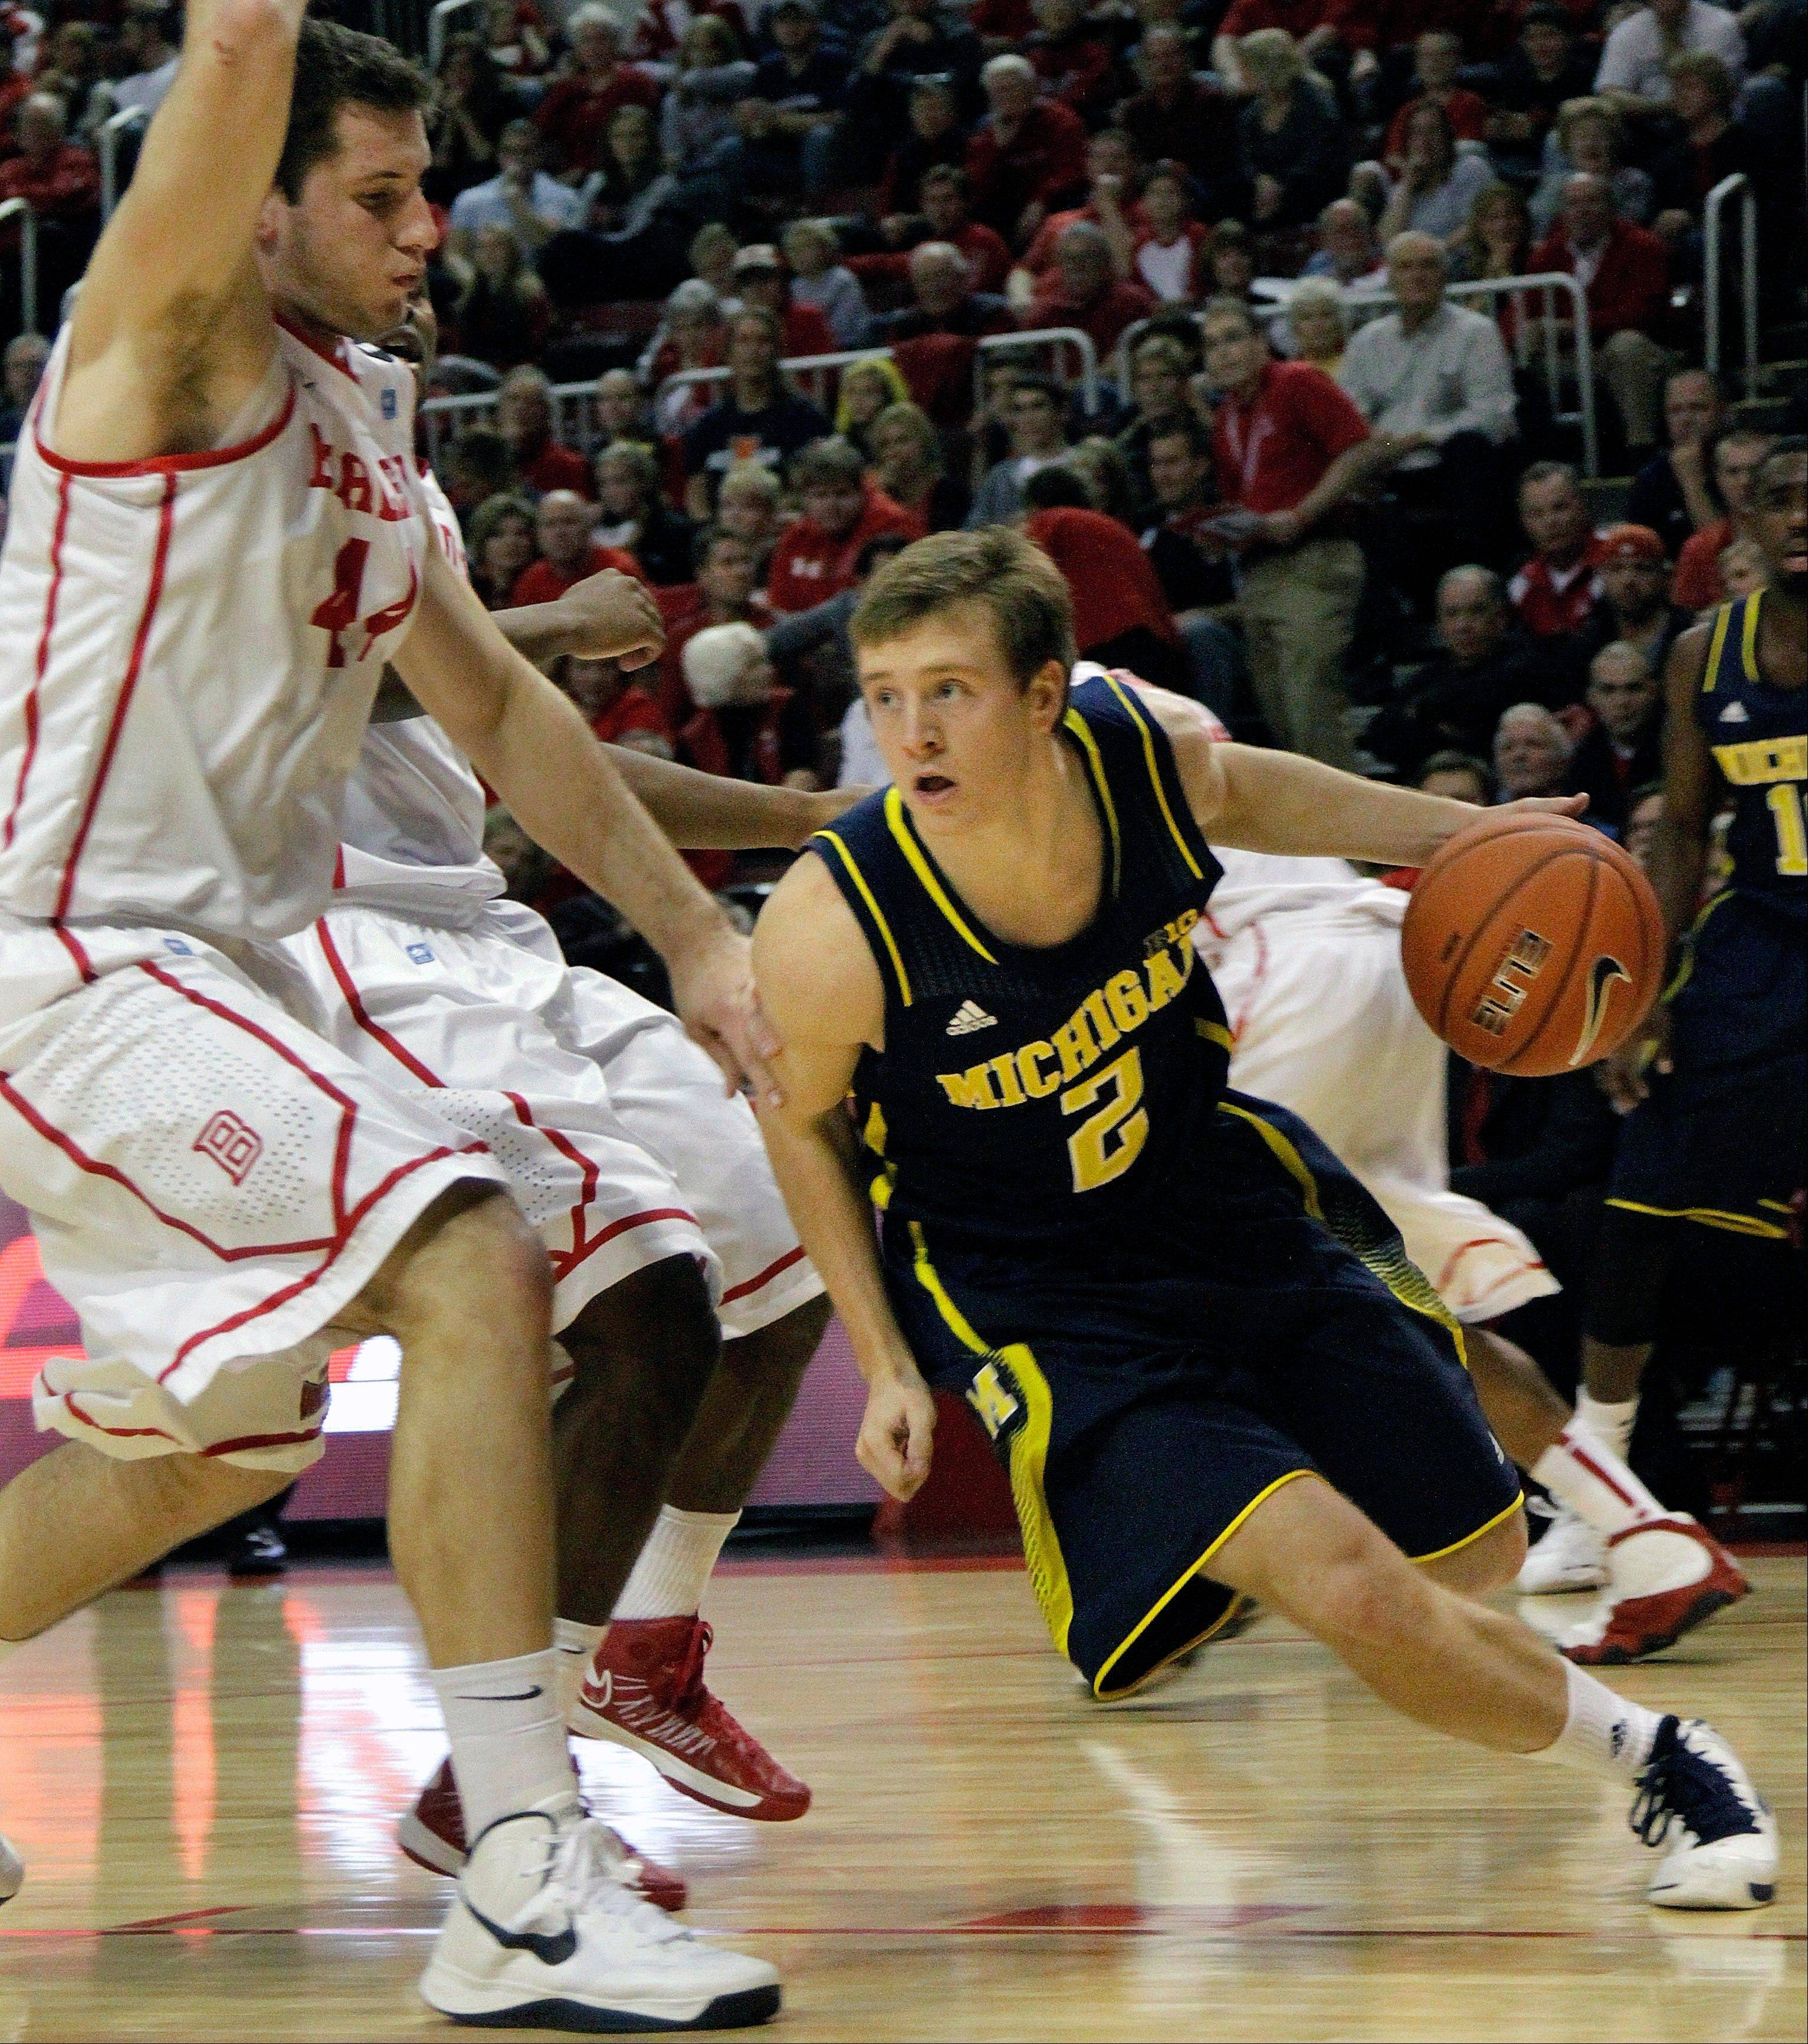 Michigan guard Spike Albrecht goes against Bradley center Jordan Prosser Saturday during the first half in Peoria.